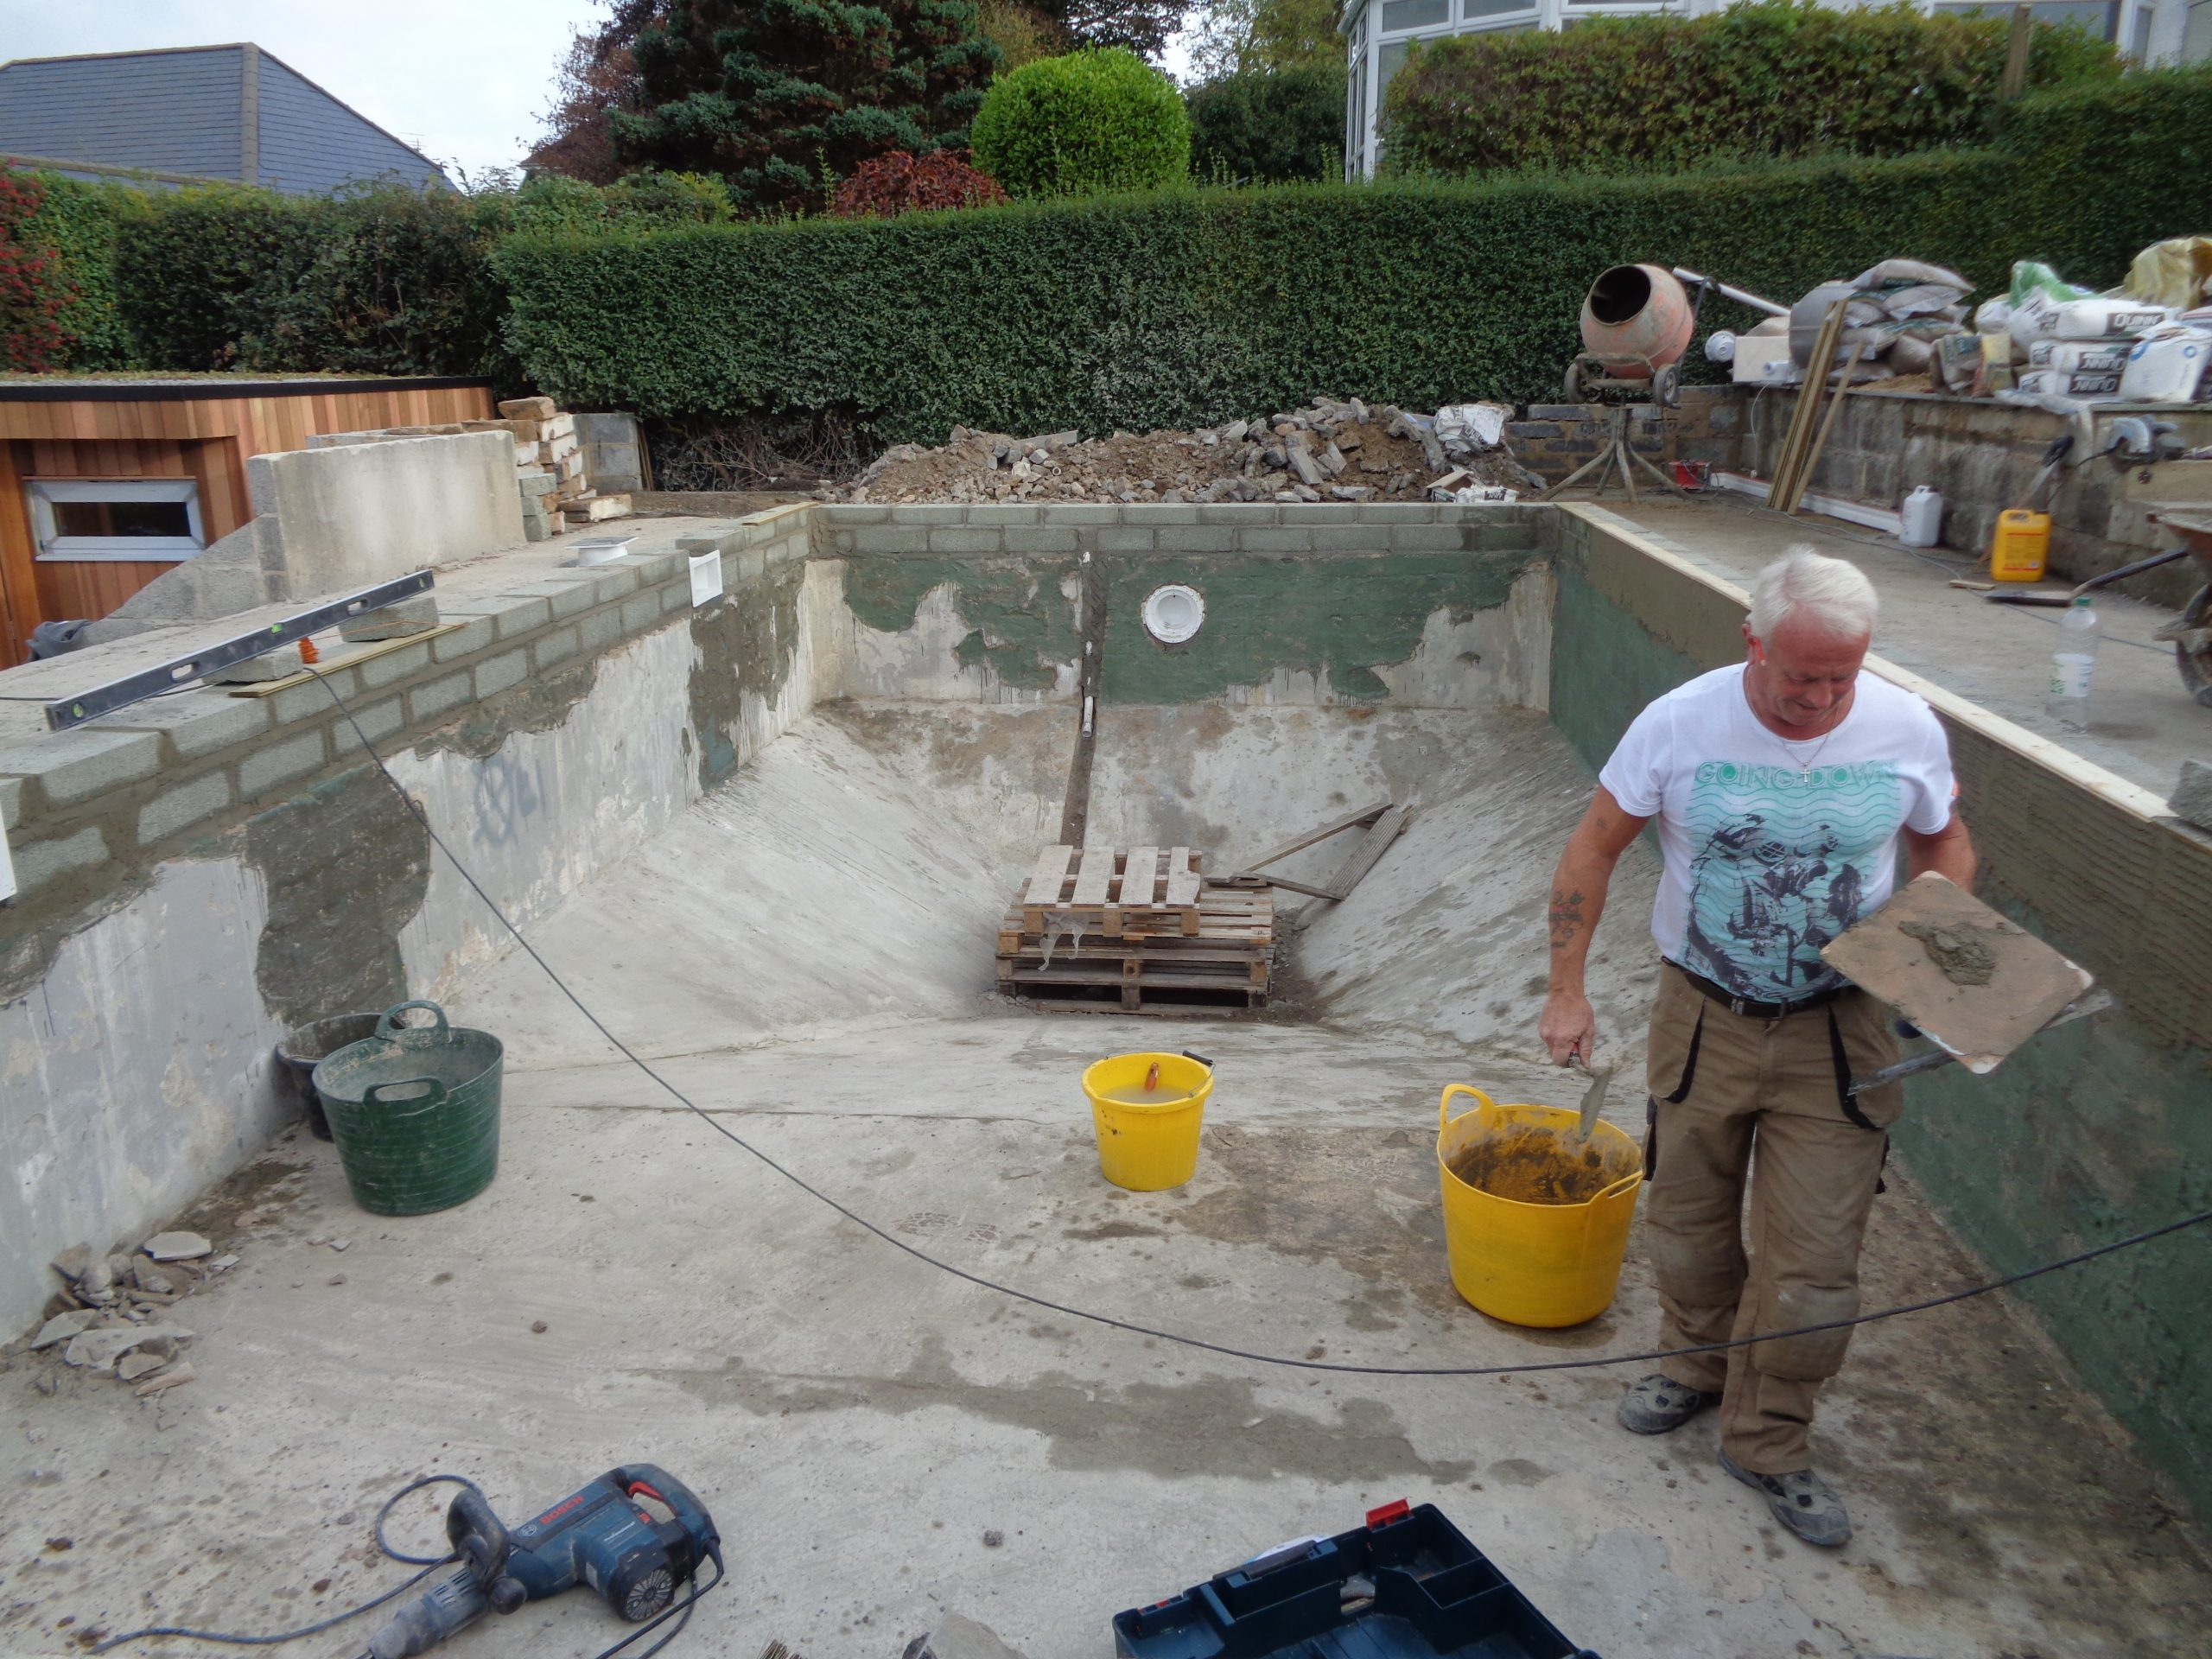 Pool Refurbishment in action